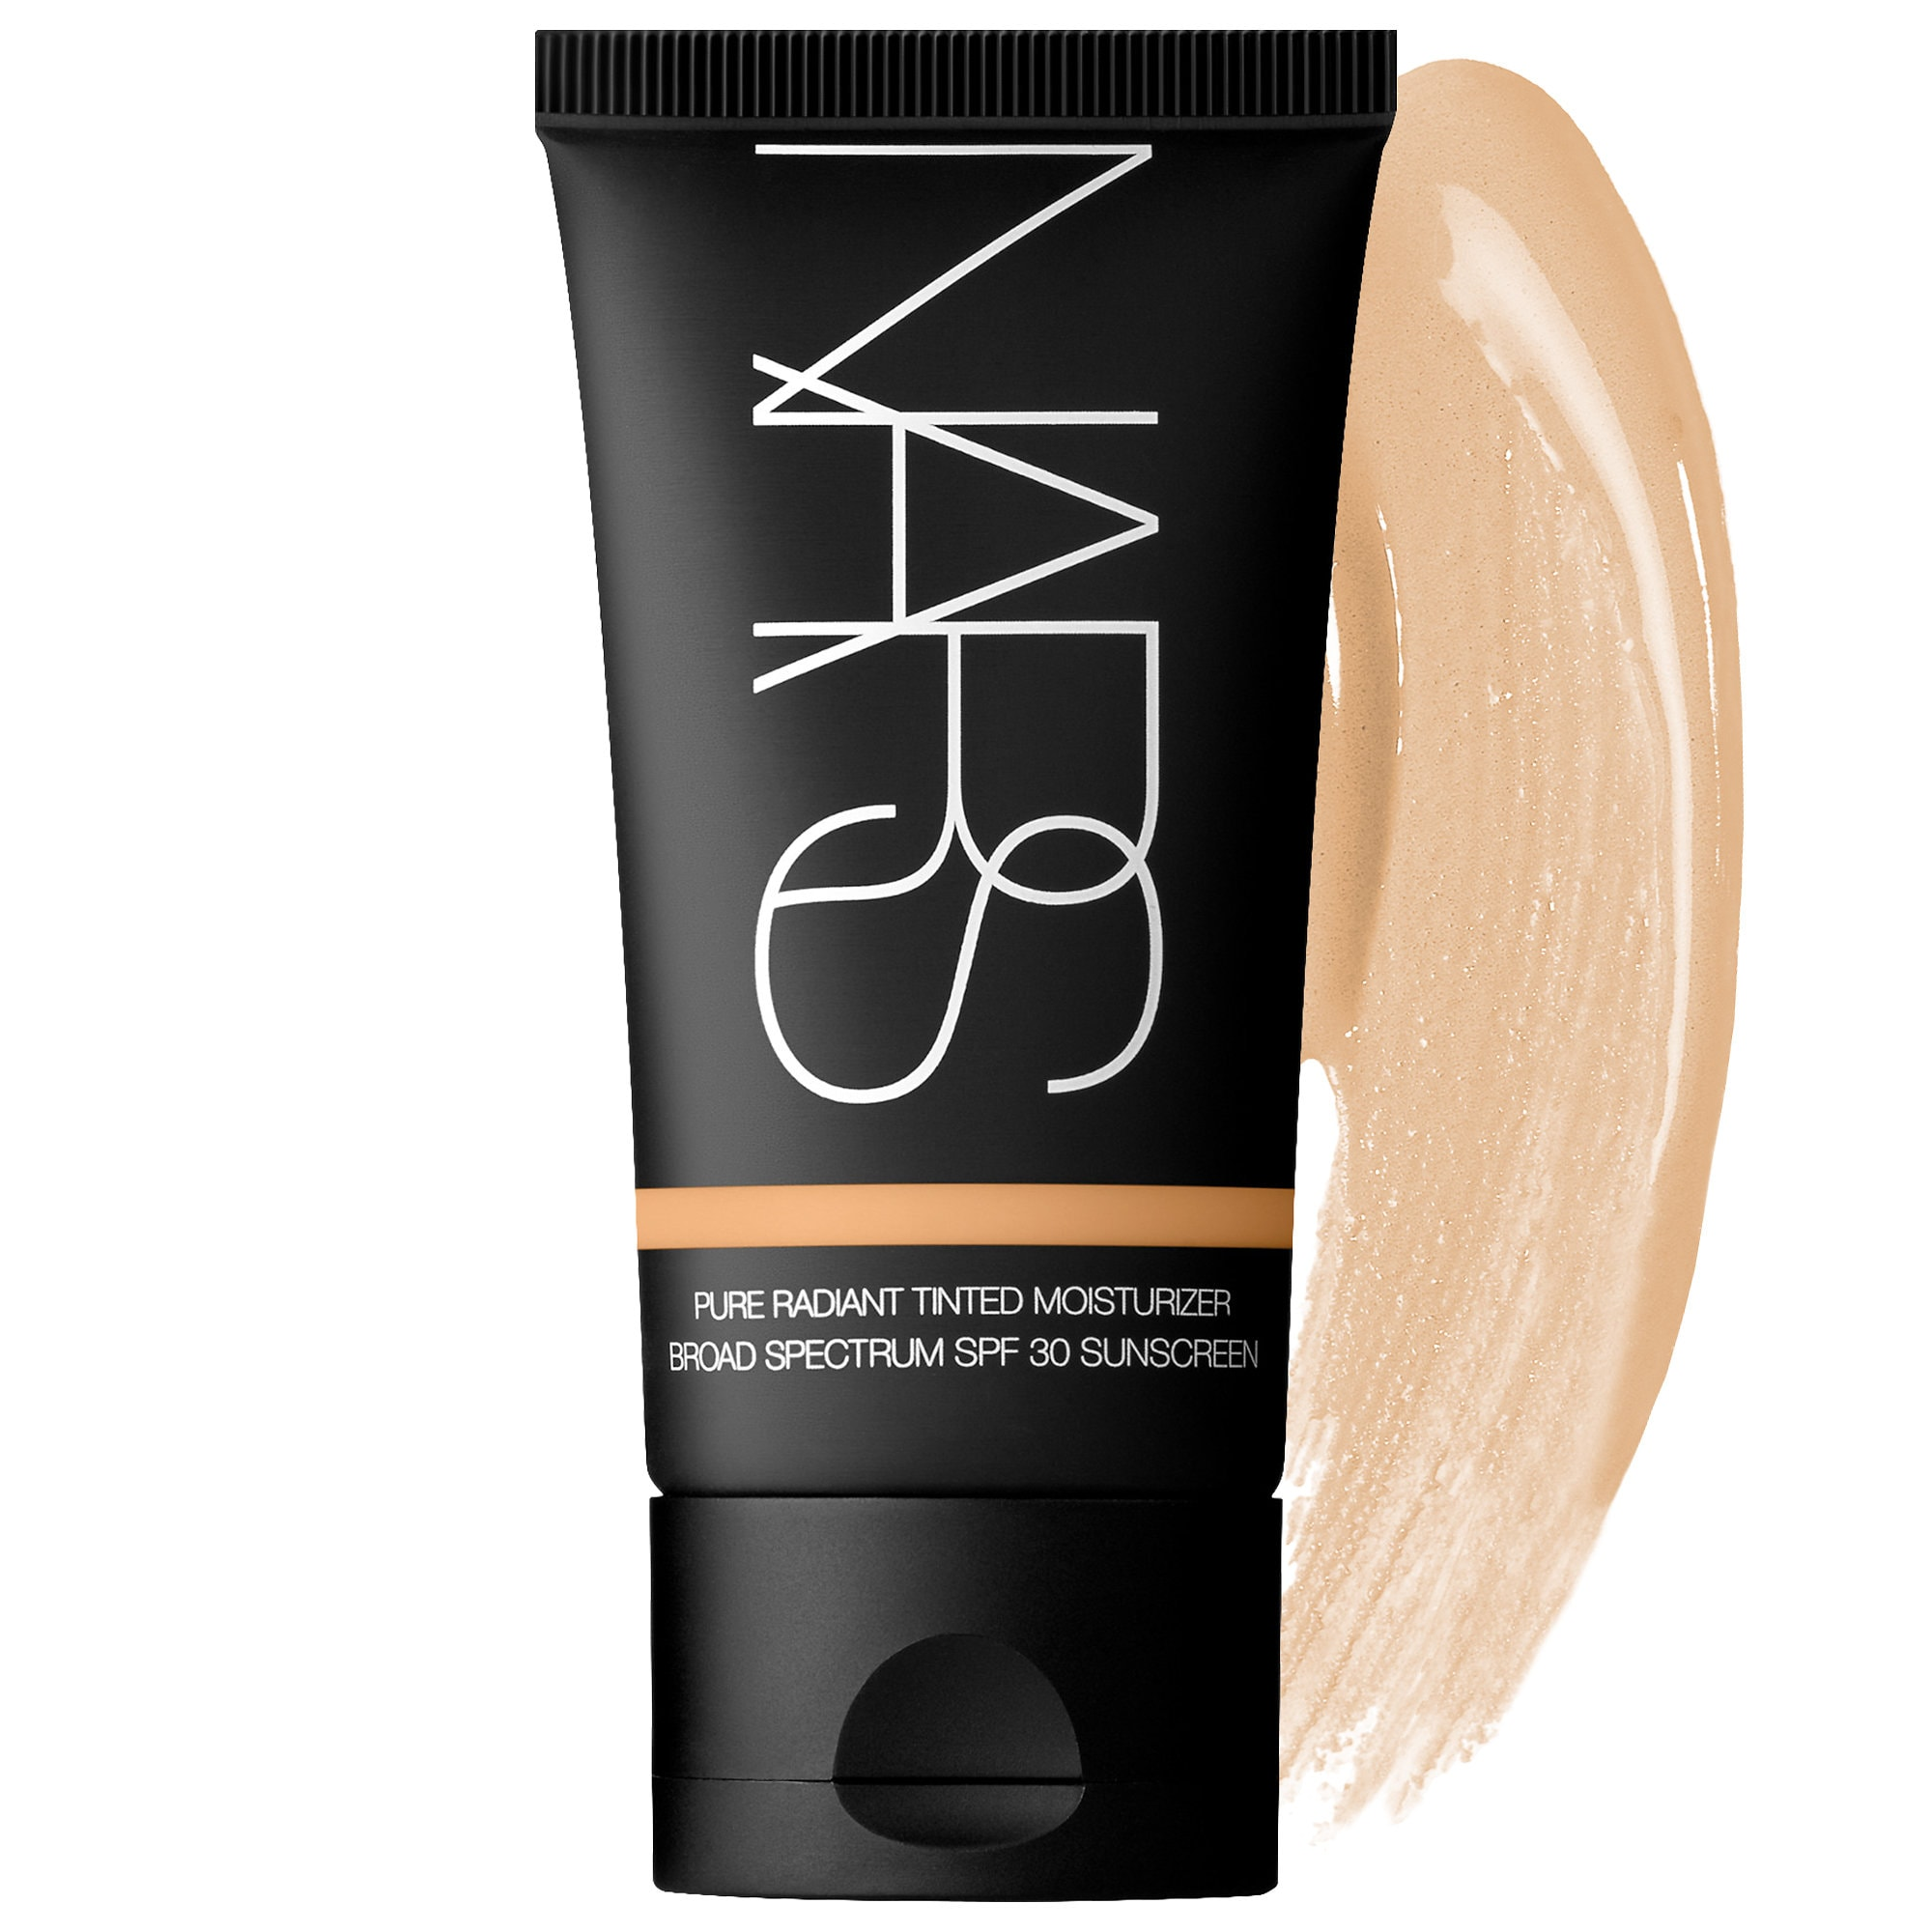 Image result for nars pure radiant tinted moisturizer